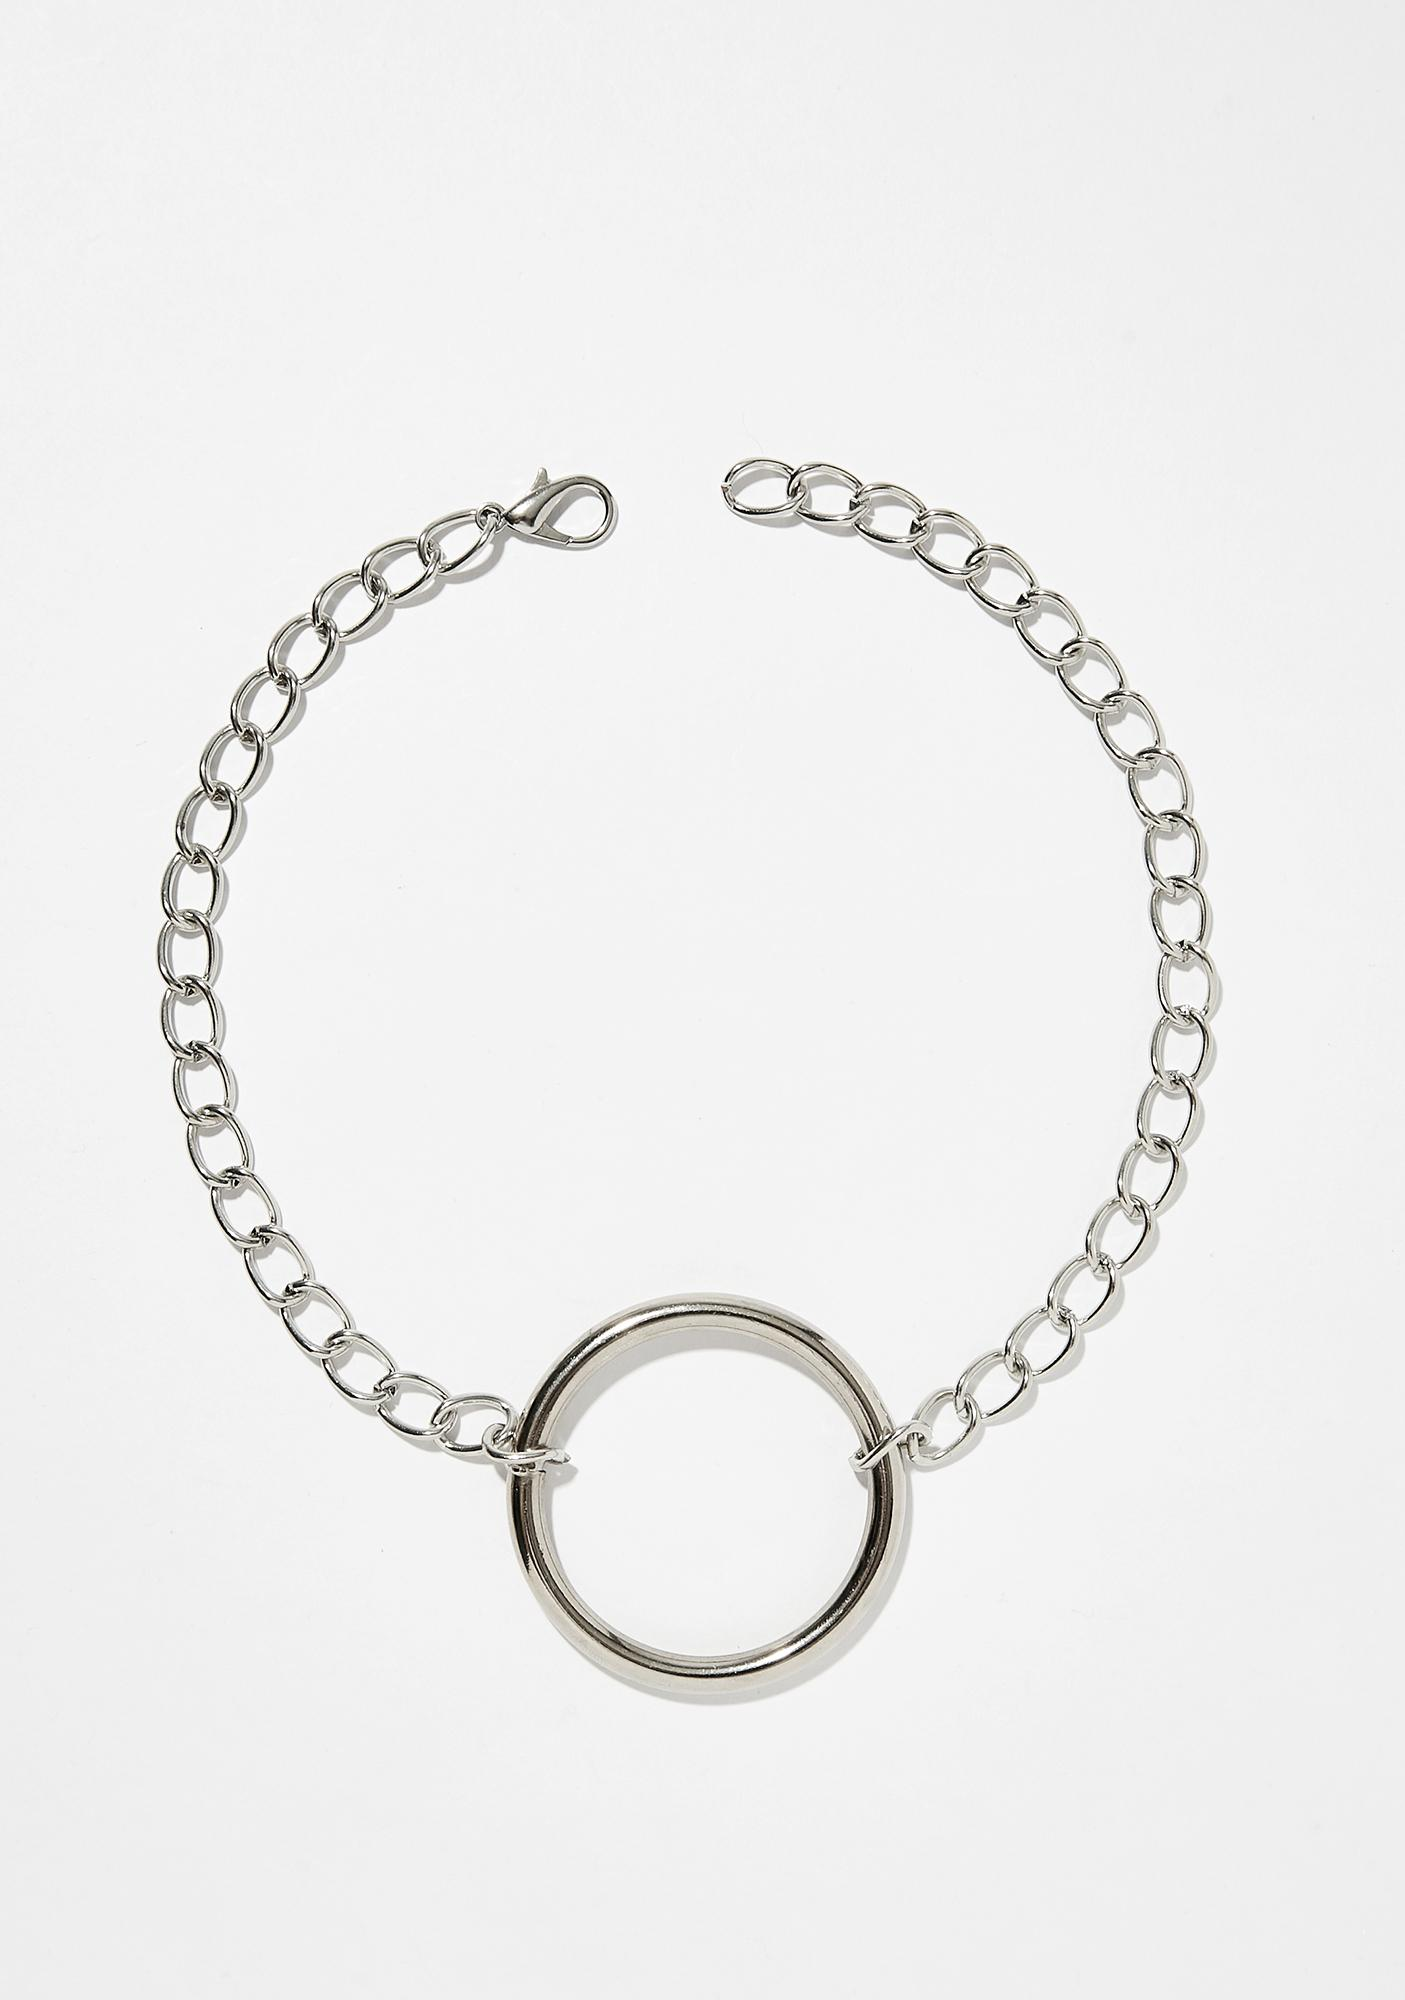 Shop Biohazard Large Chain O-Ring Choker